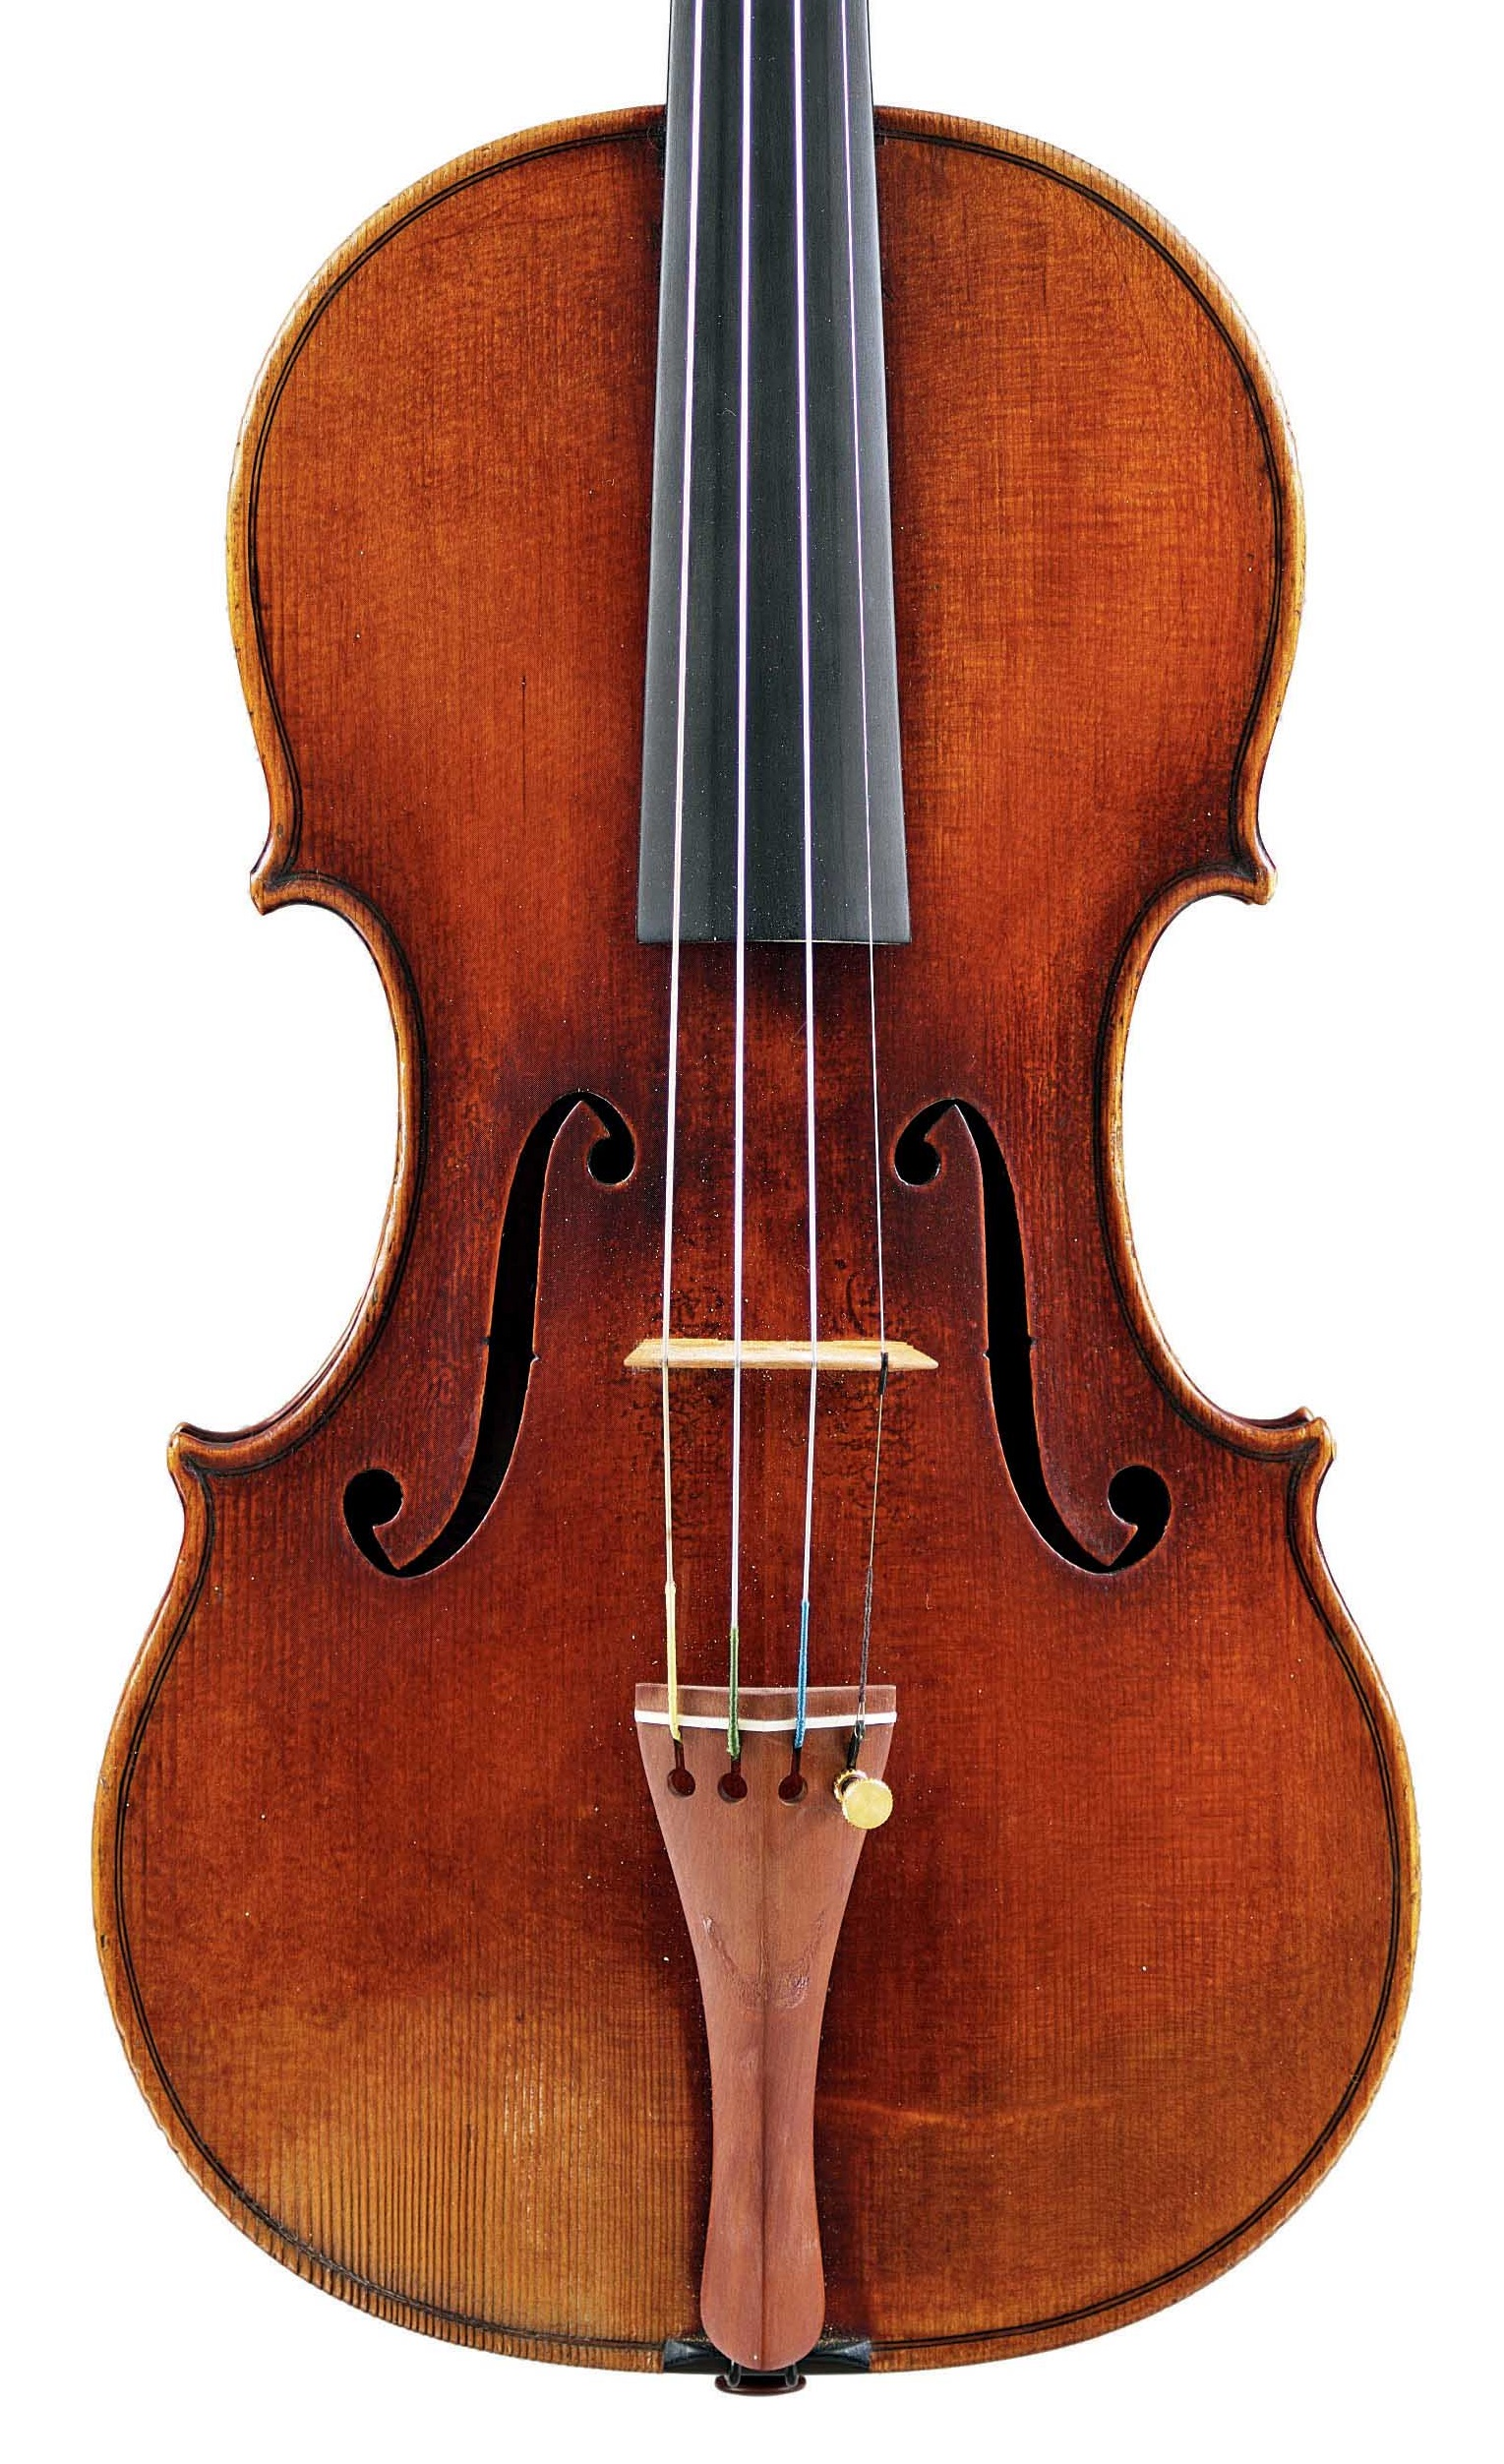 Front of violin by JB Vuillaume, ex-Sin, dated 1862, exhibited by Ingles & Hayday at Sotheby's in 2012